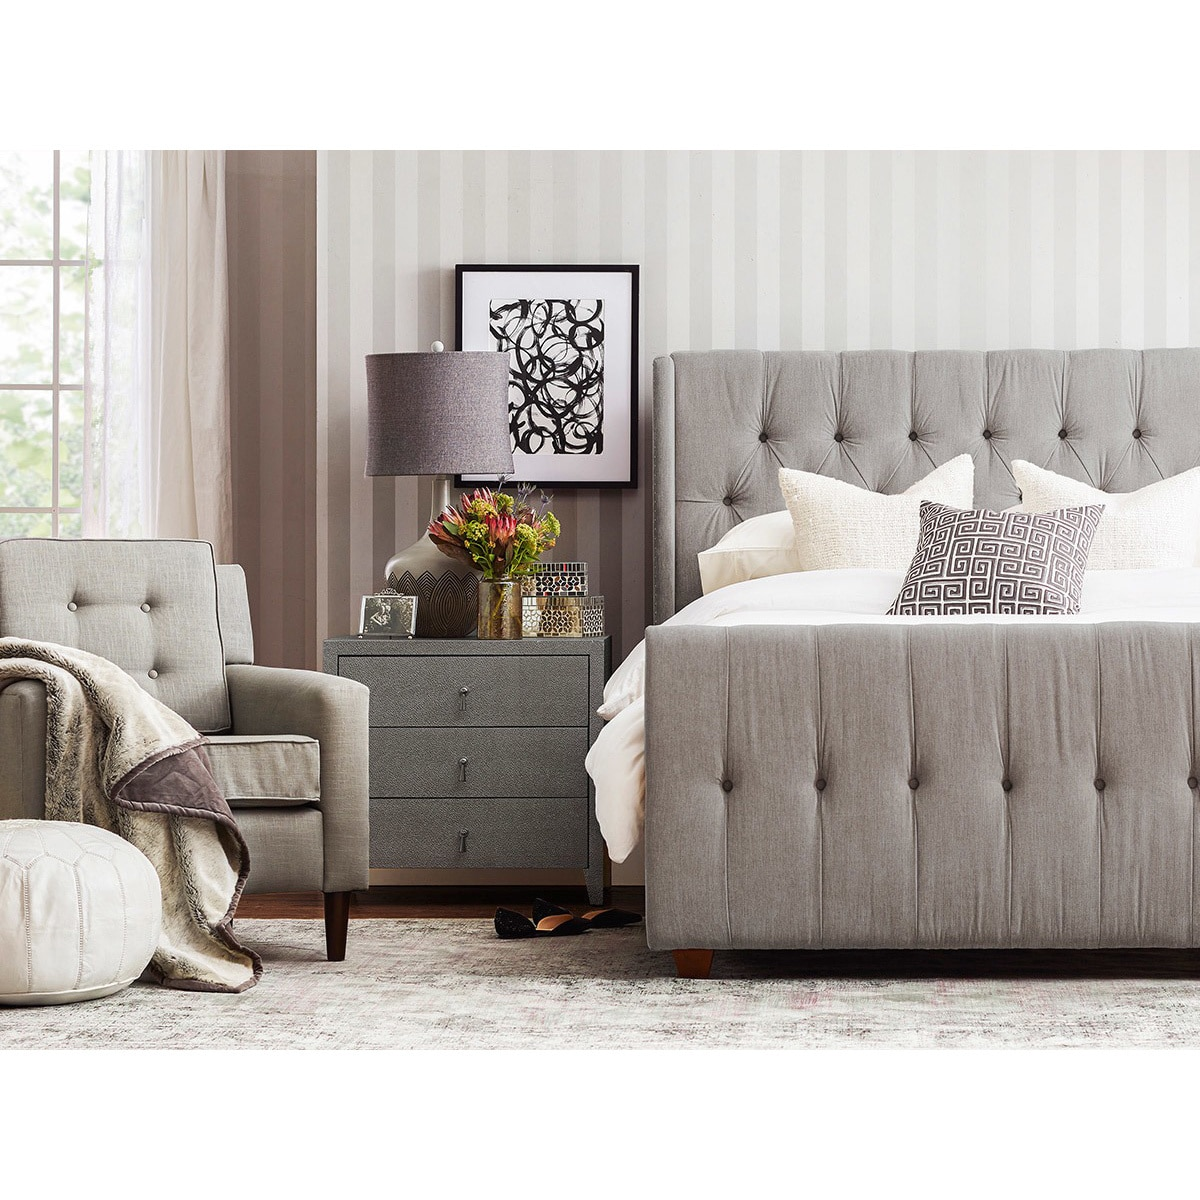 Shop Gracewood Hollow Follett Tufted Wingback Upholstered